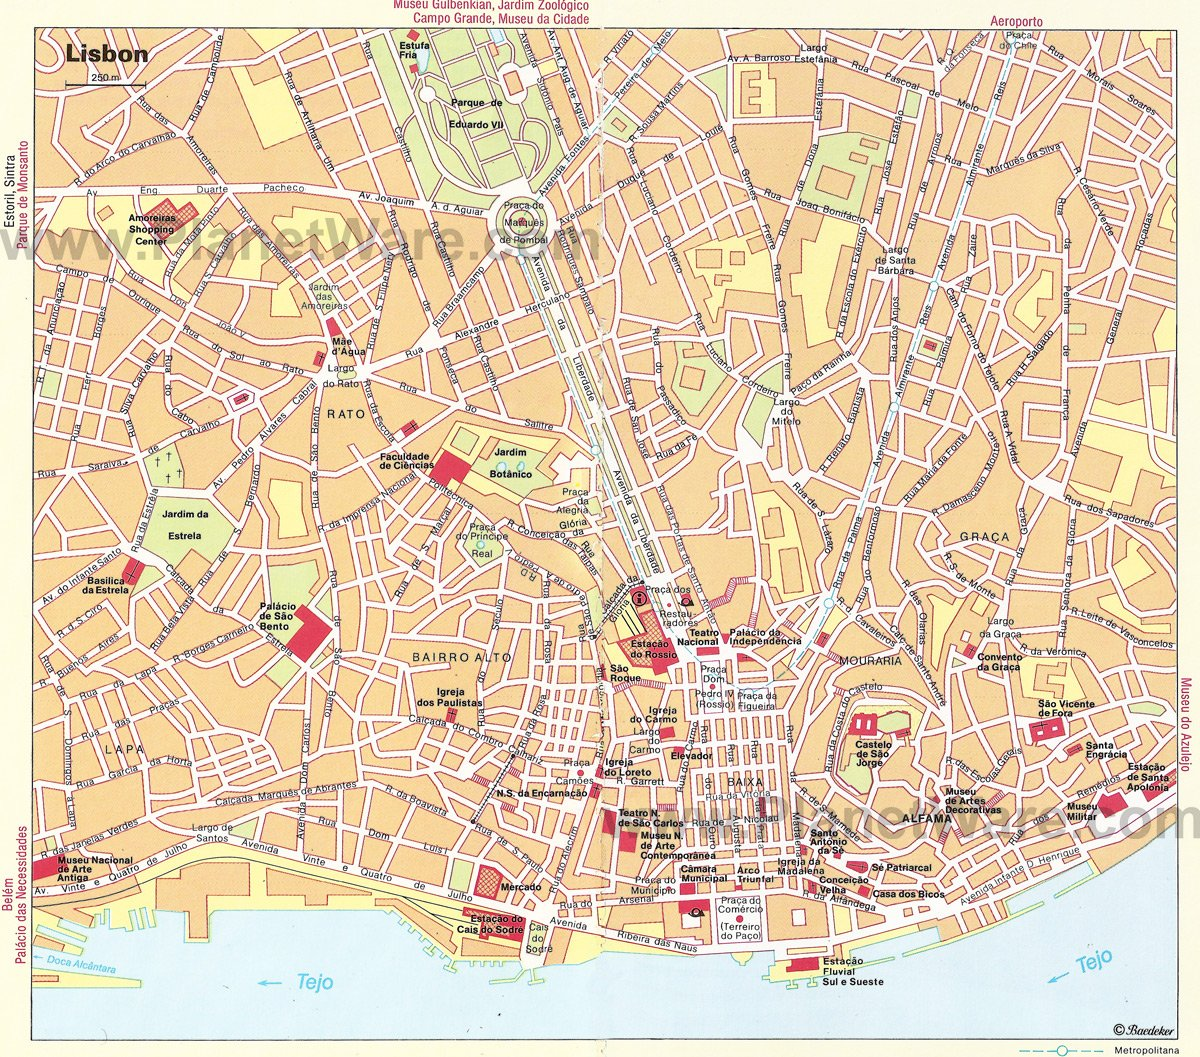 20 TopRated Tourist Attractions in Lisbon – Map Of Rome Showing Tourist Attractions